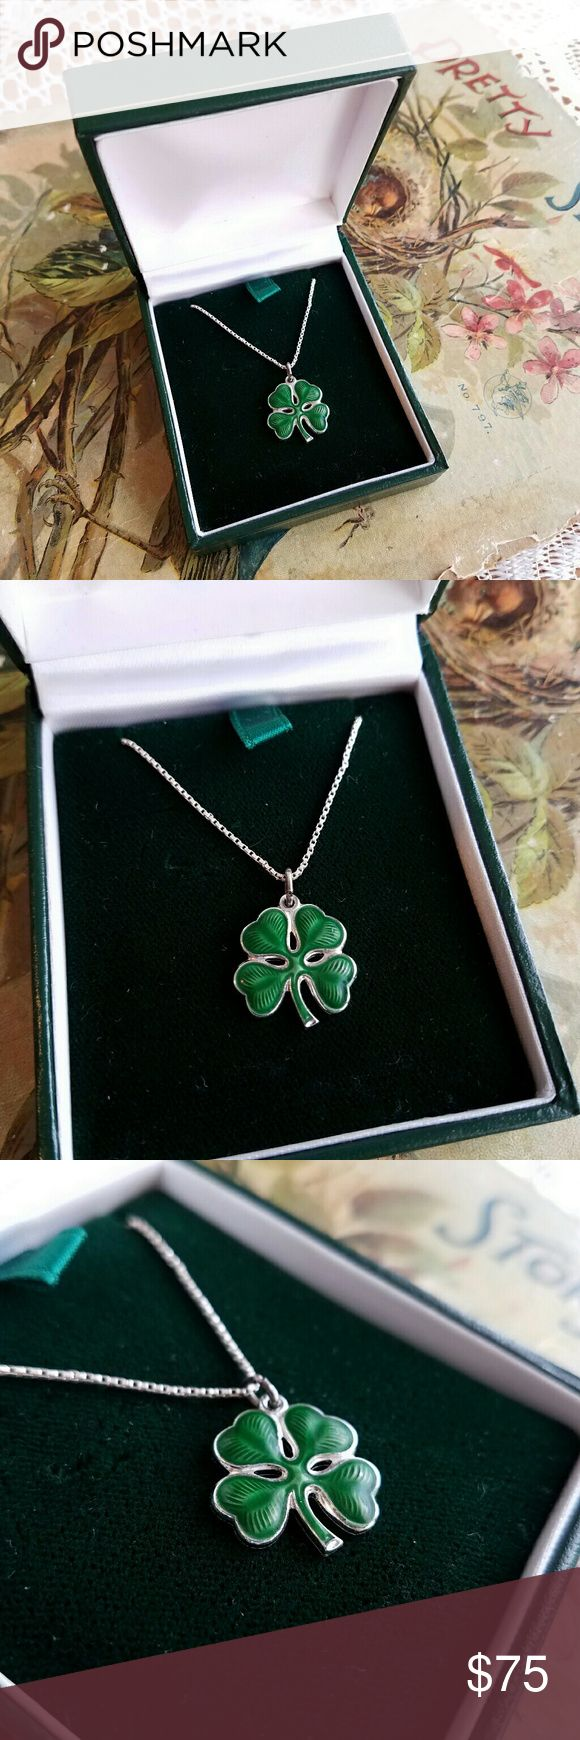 Green lucky shamrock necklace four leaf clover charm emerald green - Vintage Lucky Clover Necklace Enamel 925 Silver Silver Charms925 Silversterling Silverfour Leaf Clover Necklacegreen